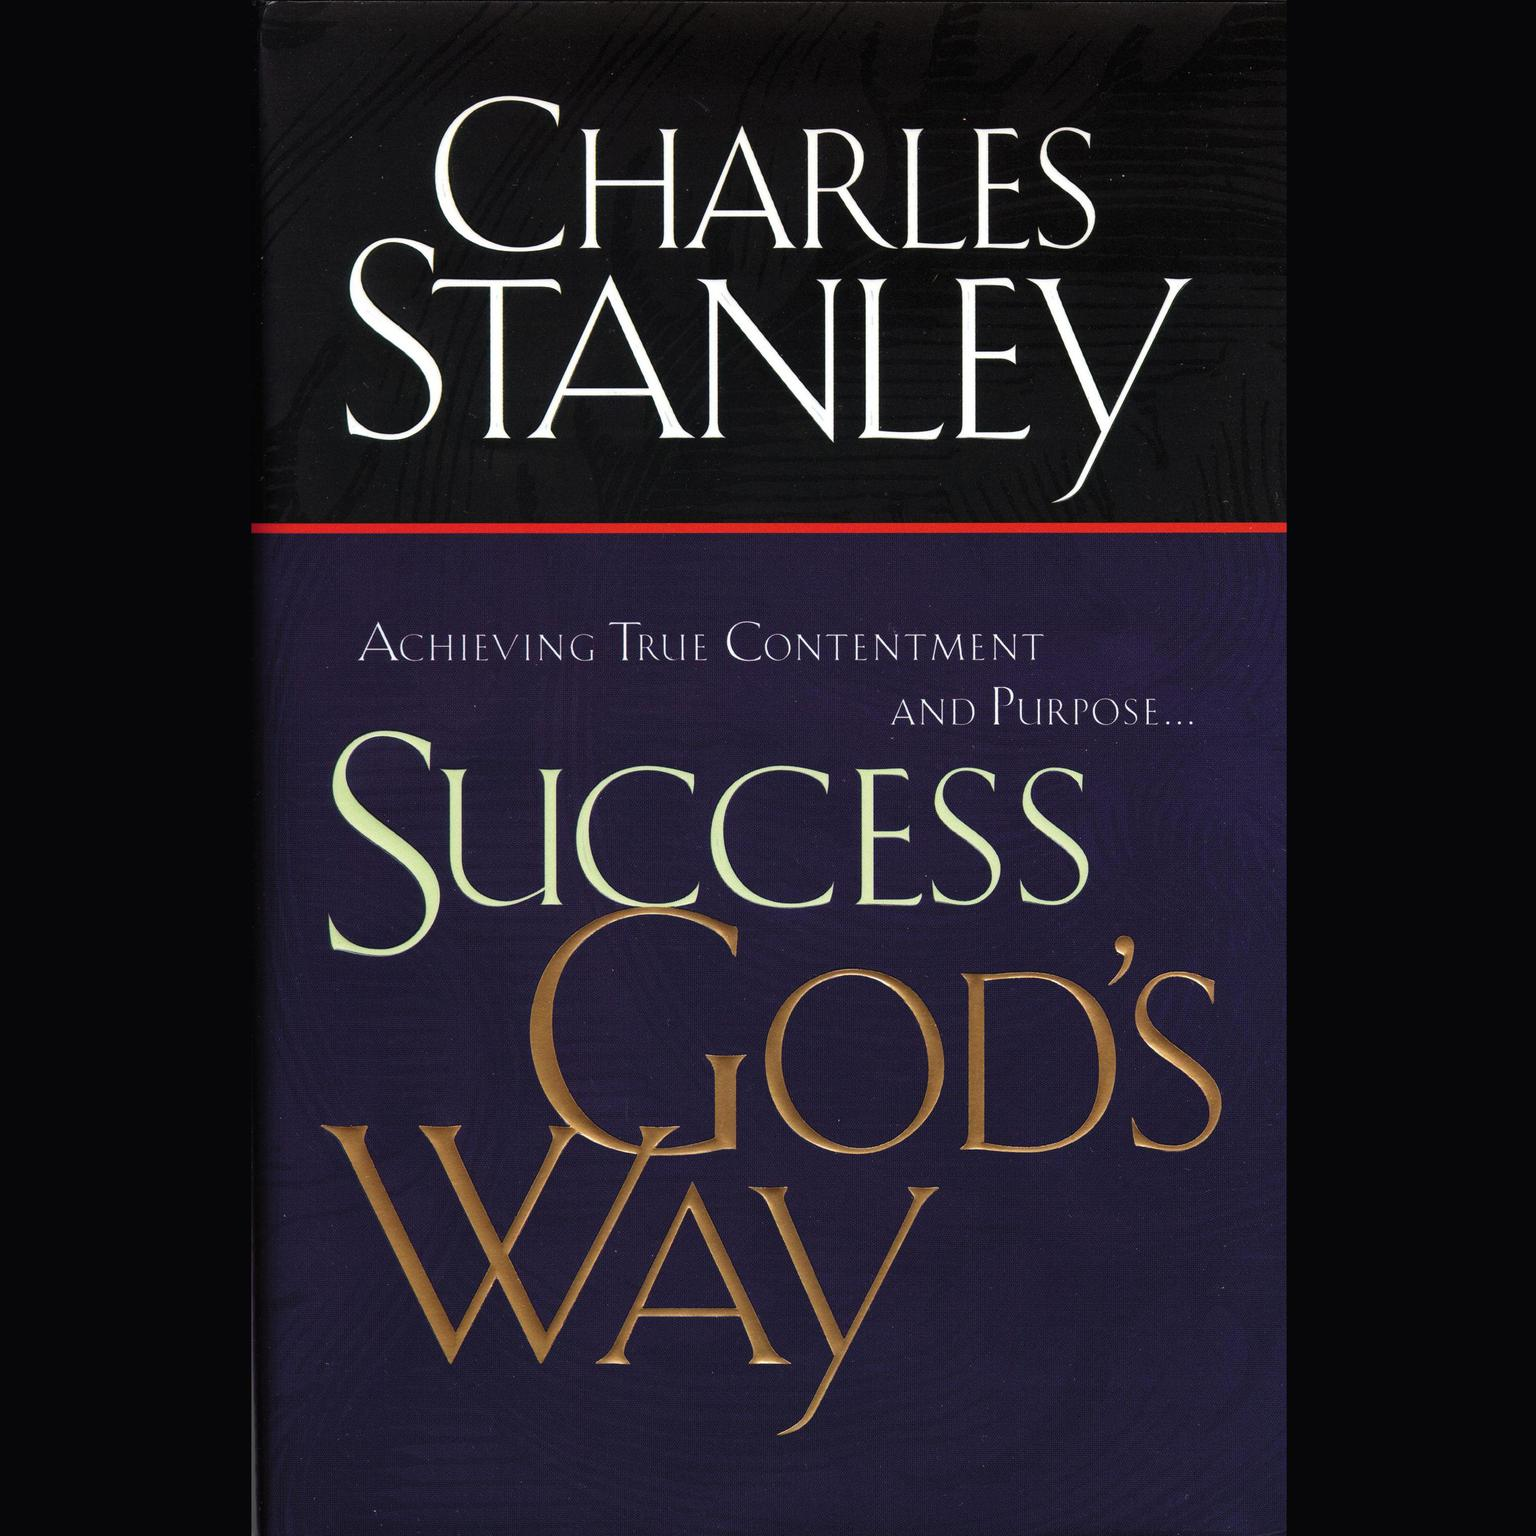 Success Gods Way (Abridged): Achieving True Contentment and Purpose Audiobook, by Charles F. Stanley